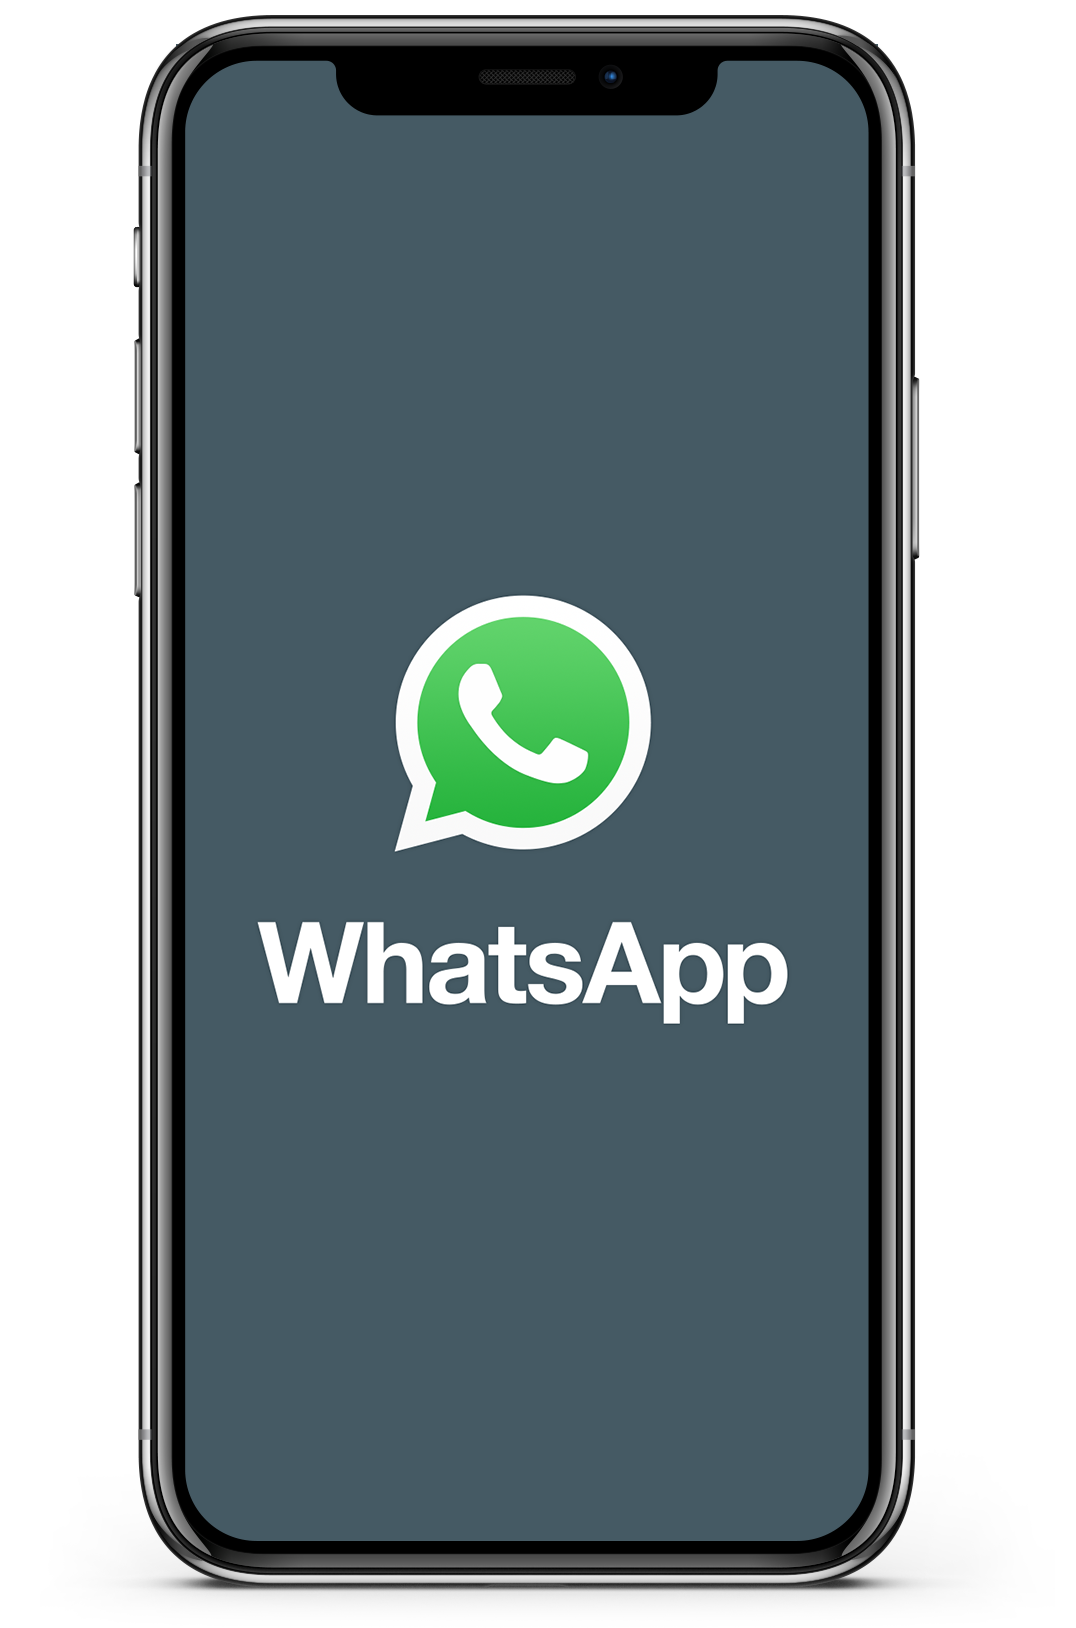 Whatsapp App for Iphone Iphone, App, Mask app